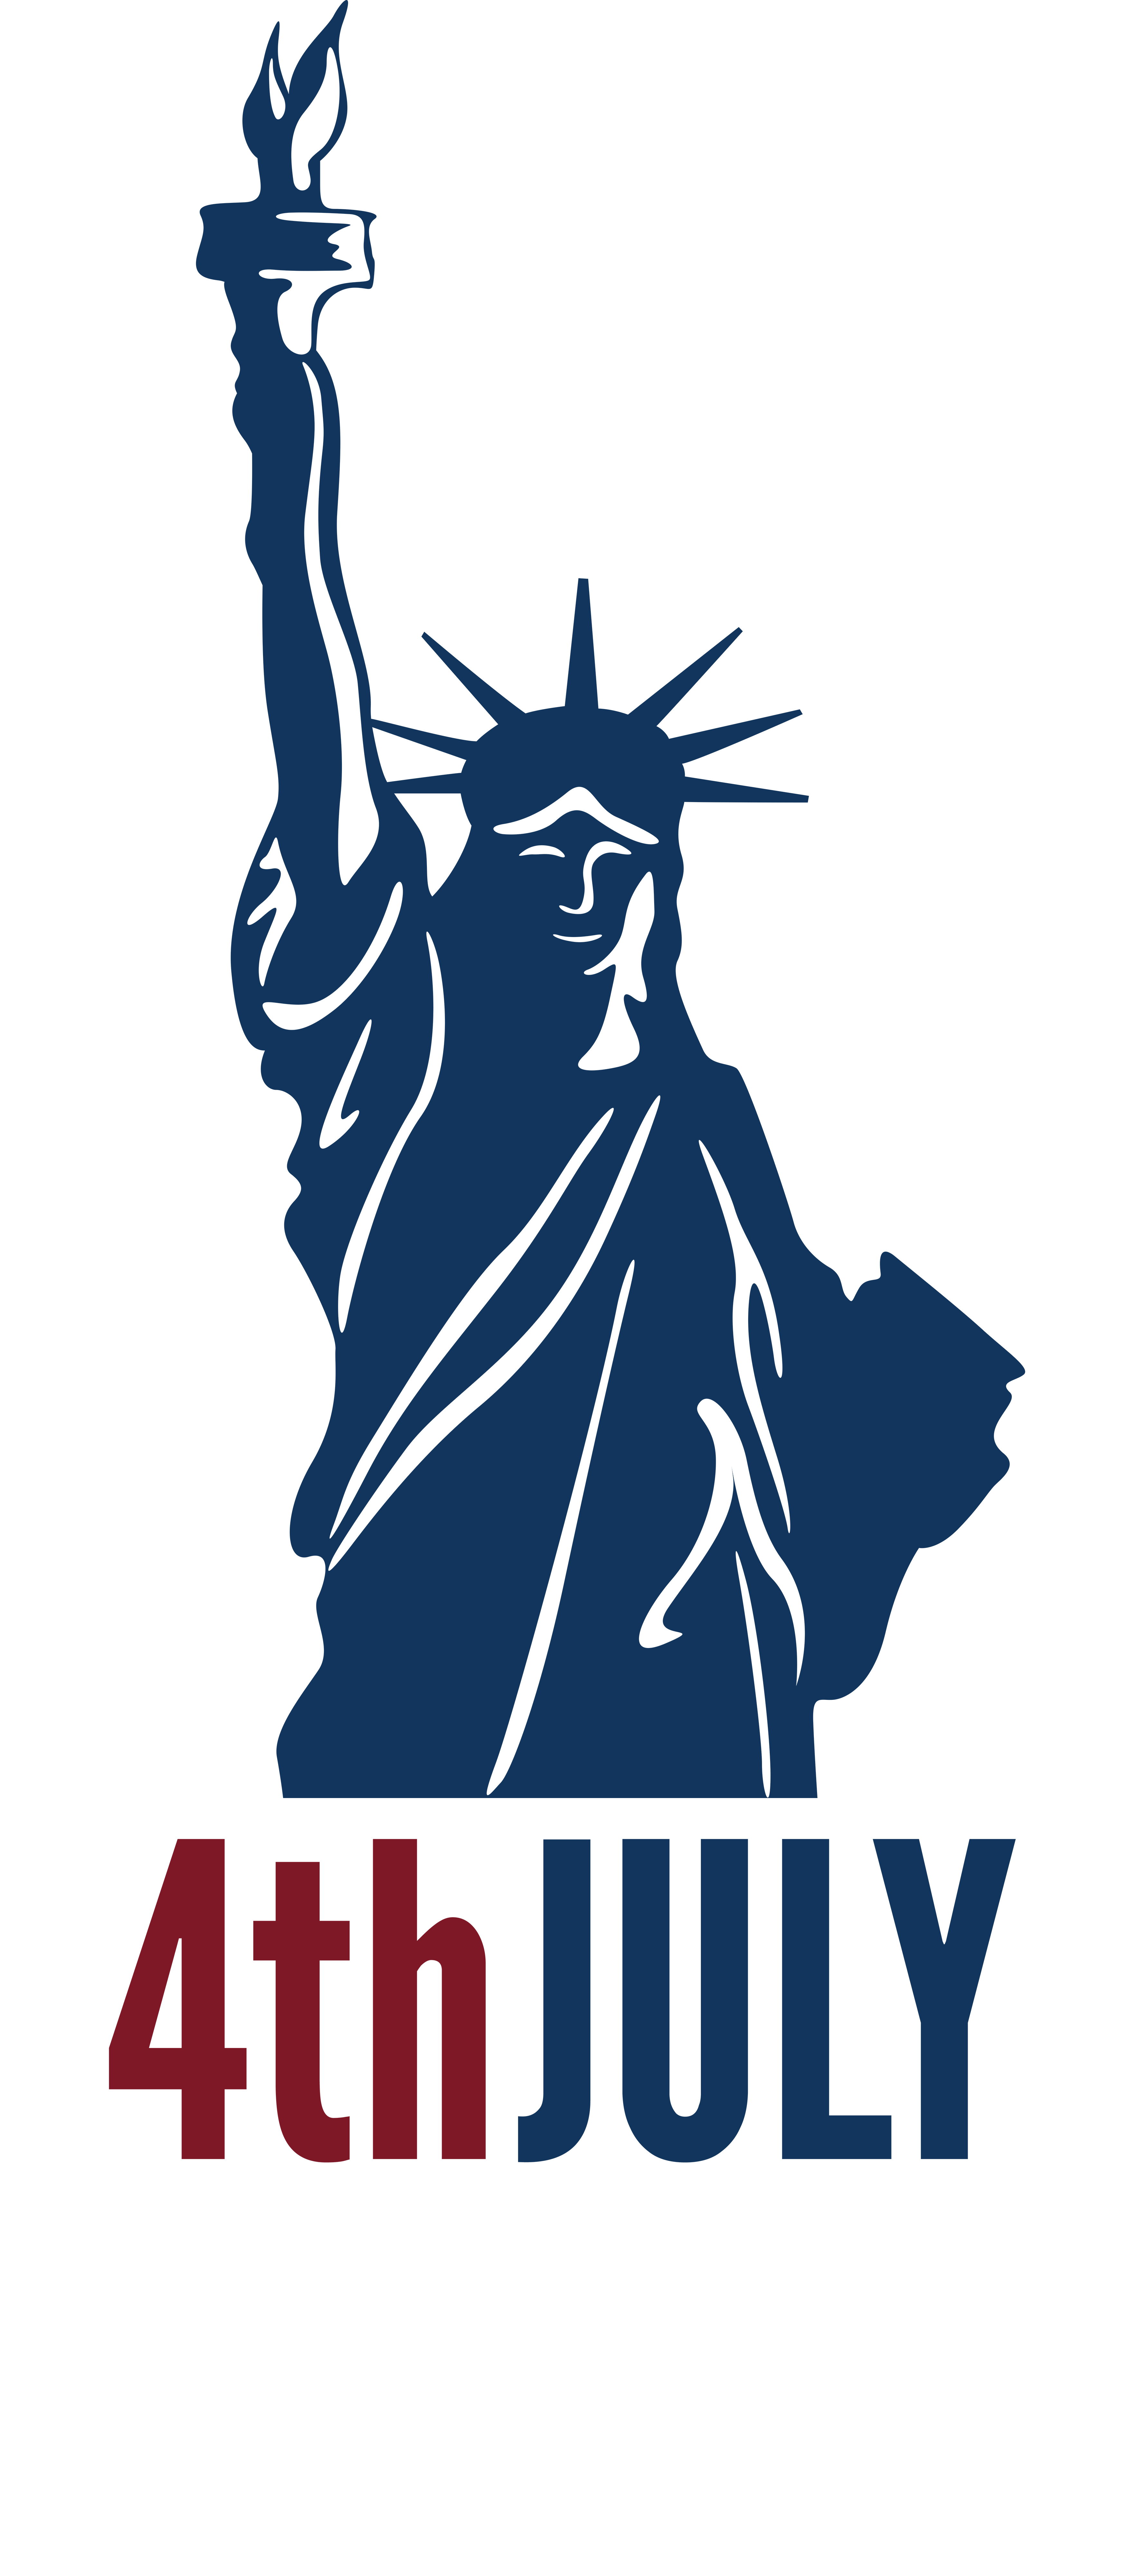 Liberty clipart 4th july. Th independence day